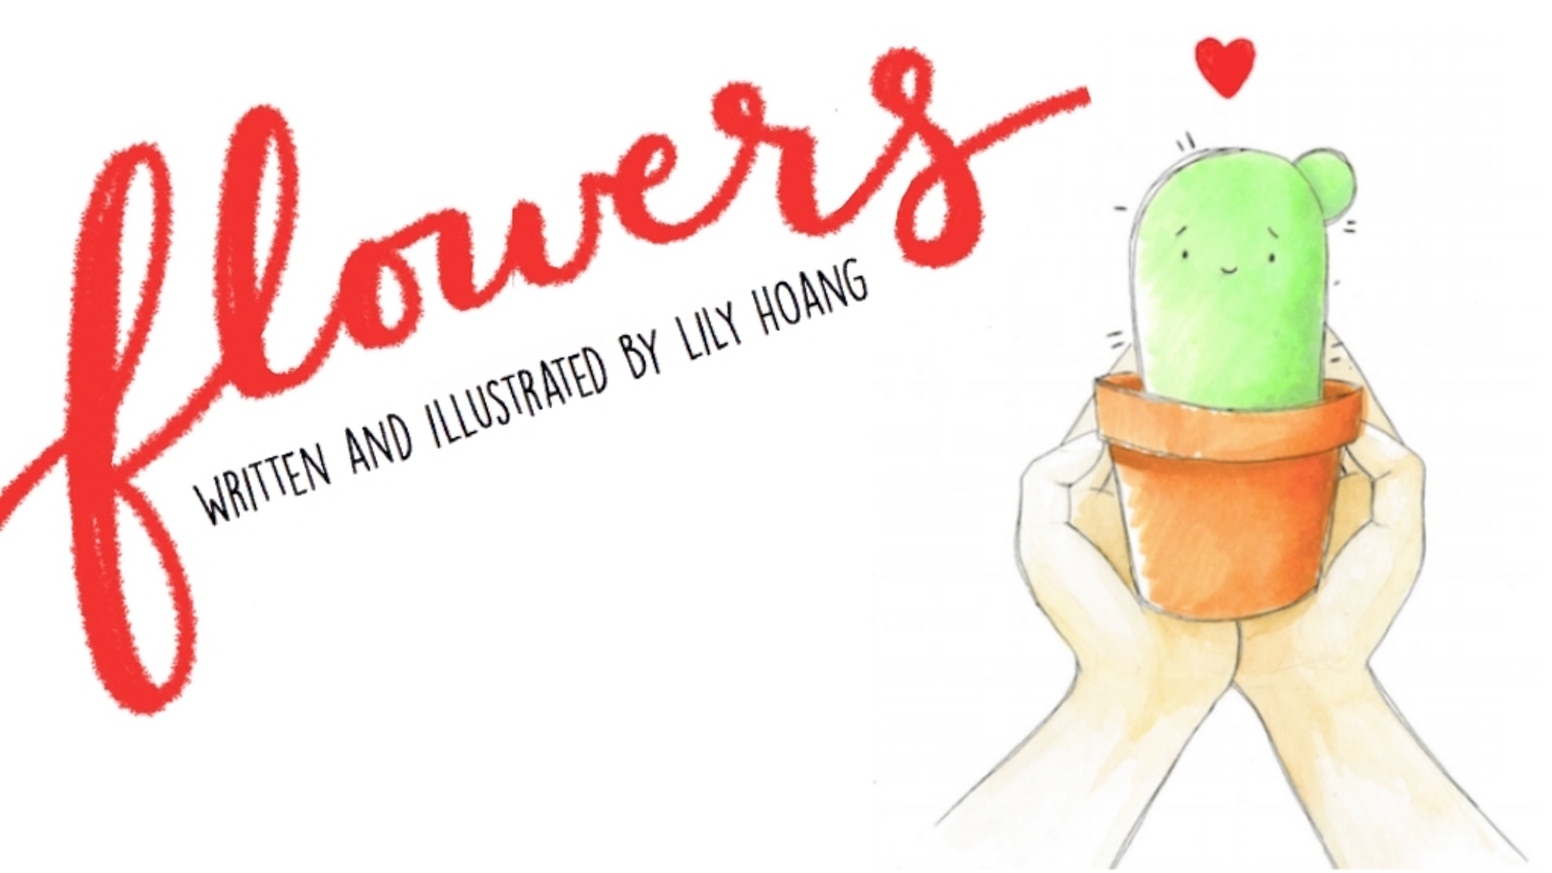 Flowers By Lily Hoang 25 Funded Pin Update Kickstarter